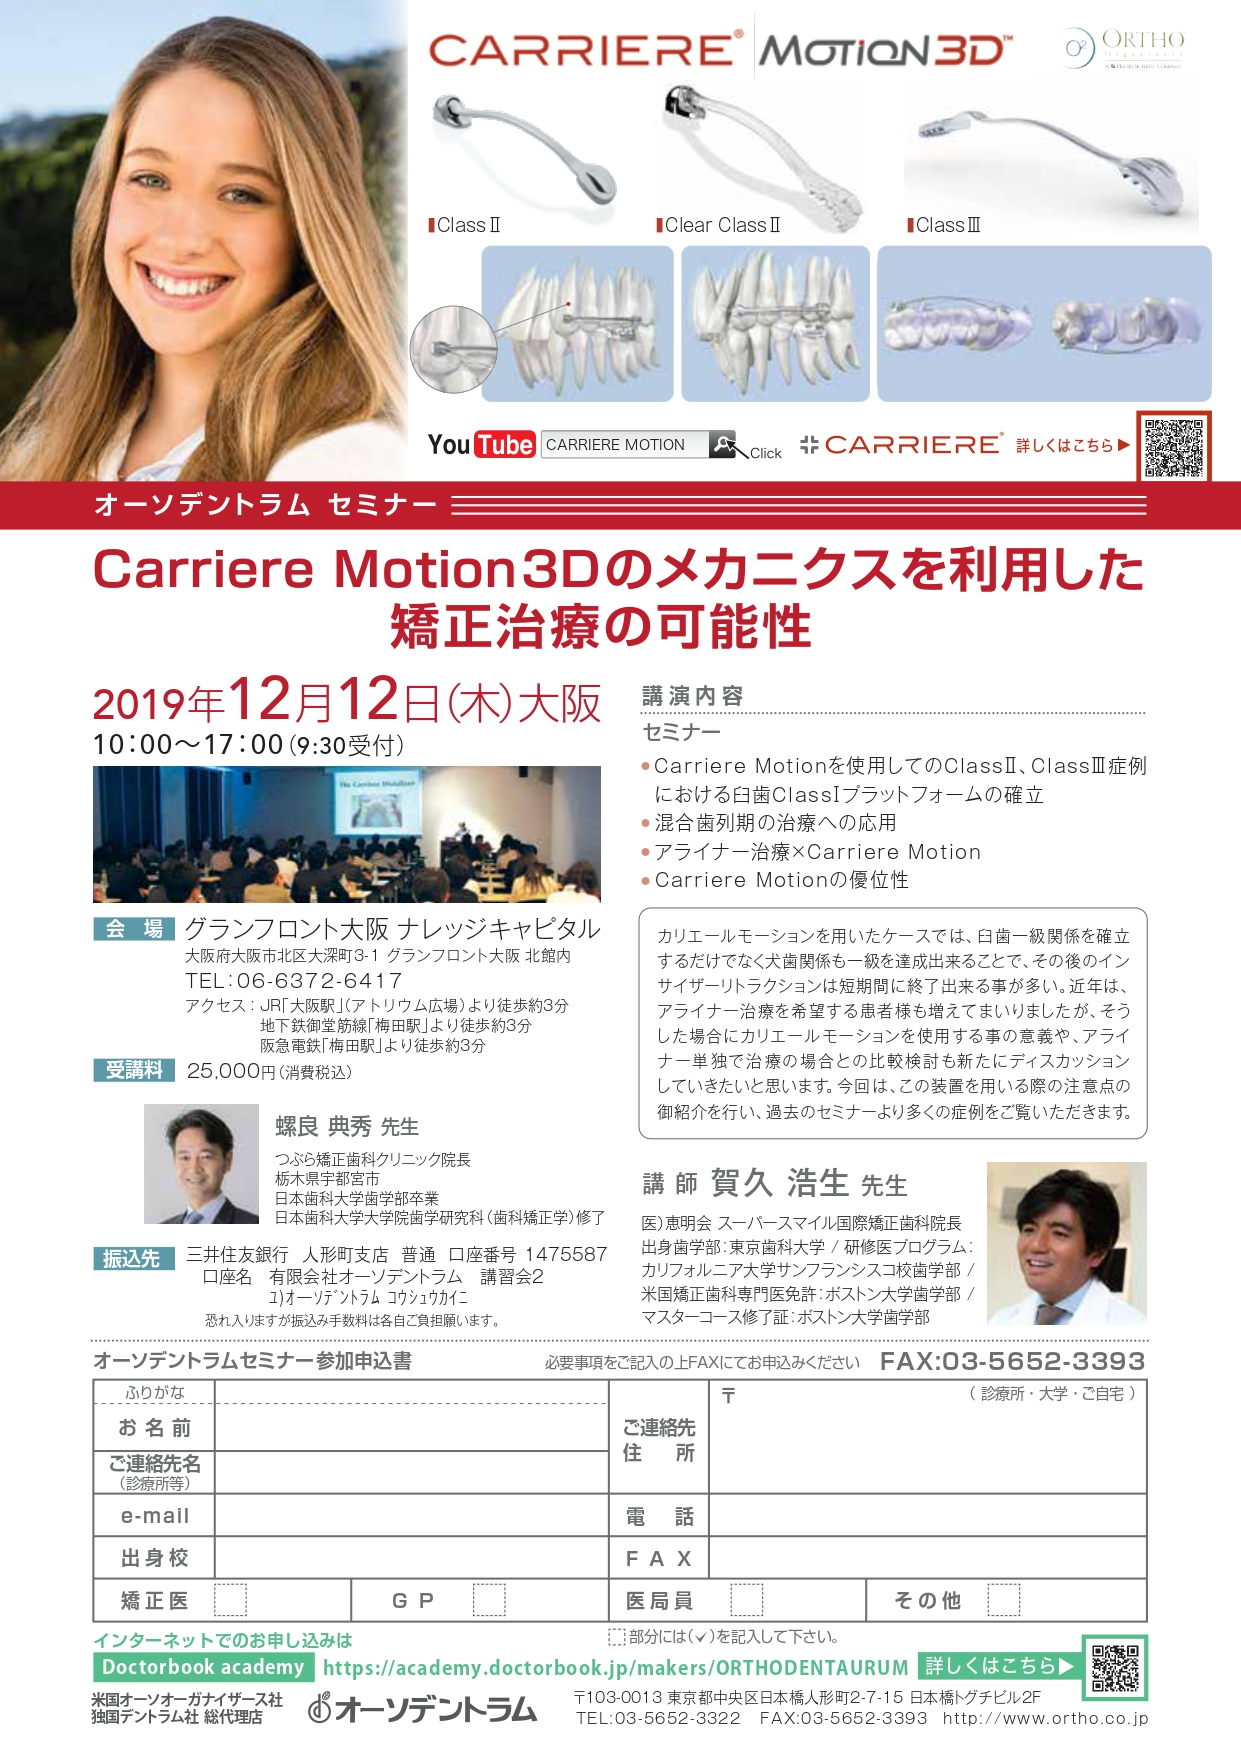 Carriere Motion3Dのメカニクスを利用した 矯正治療の可能性